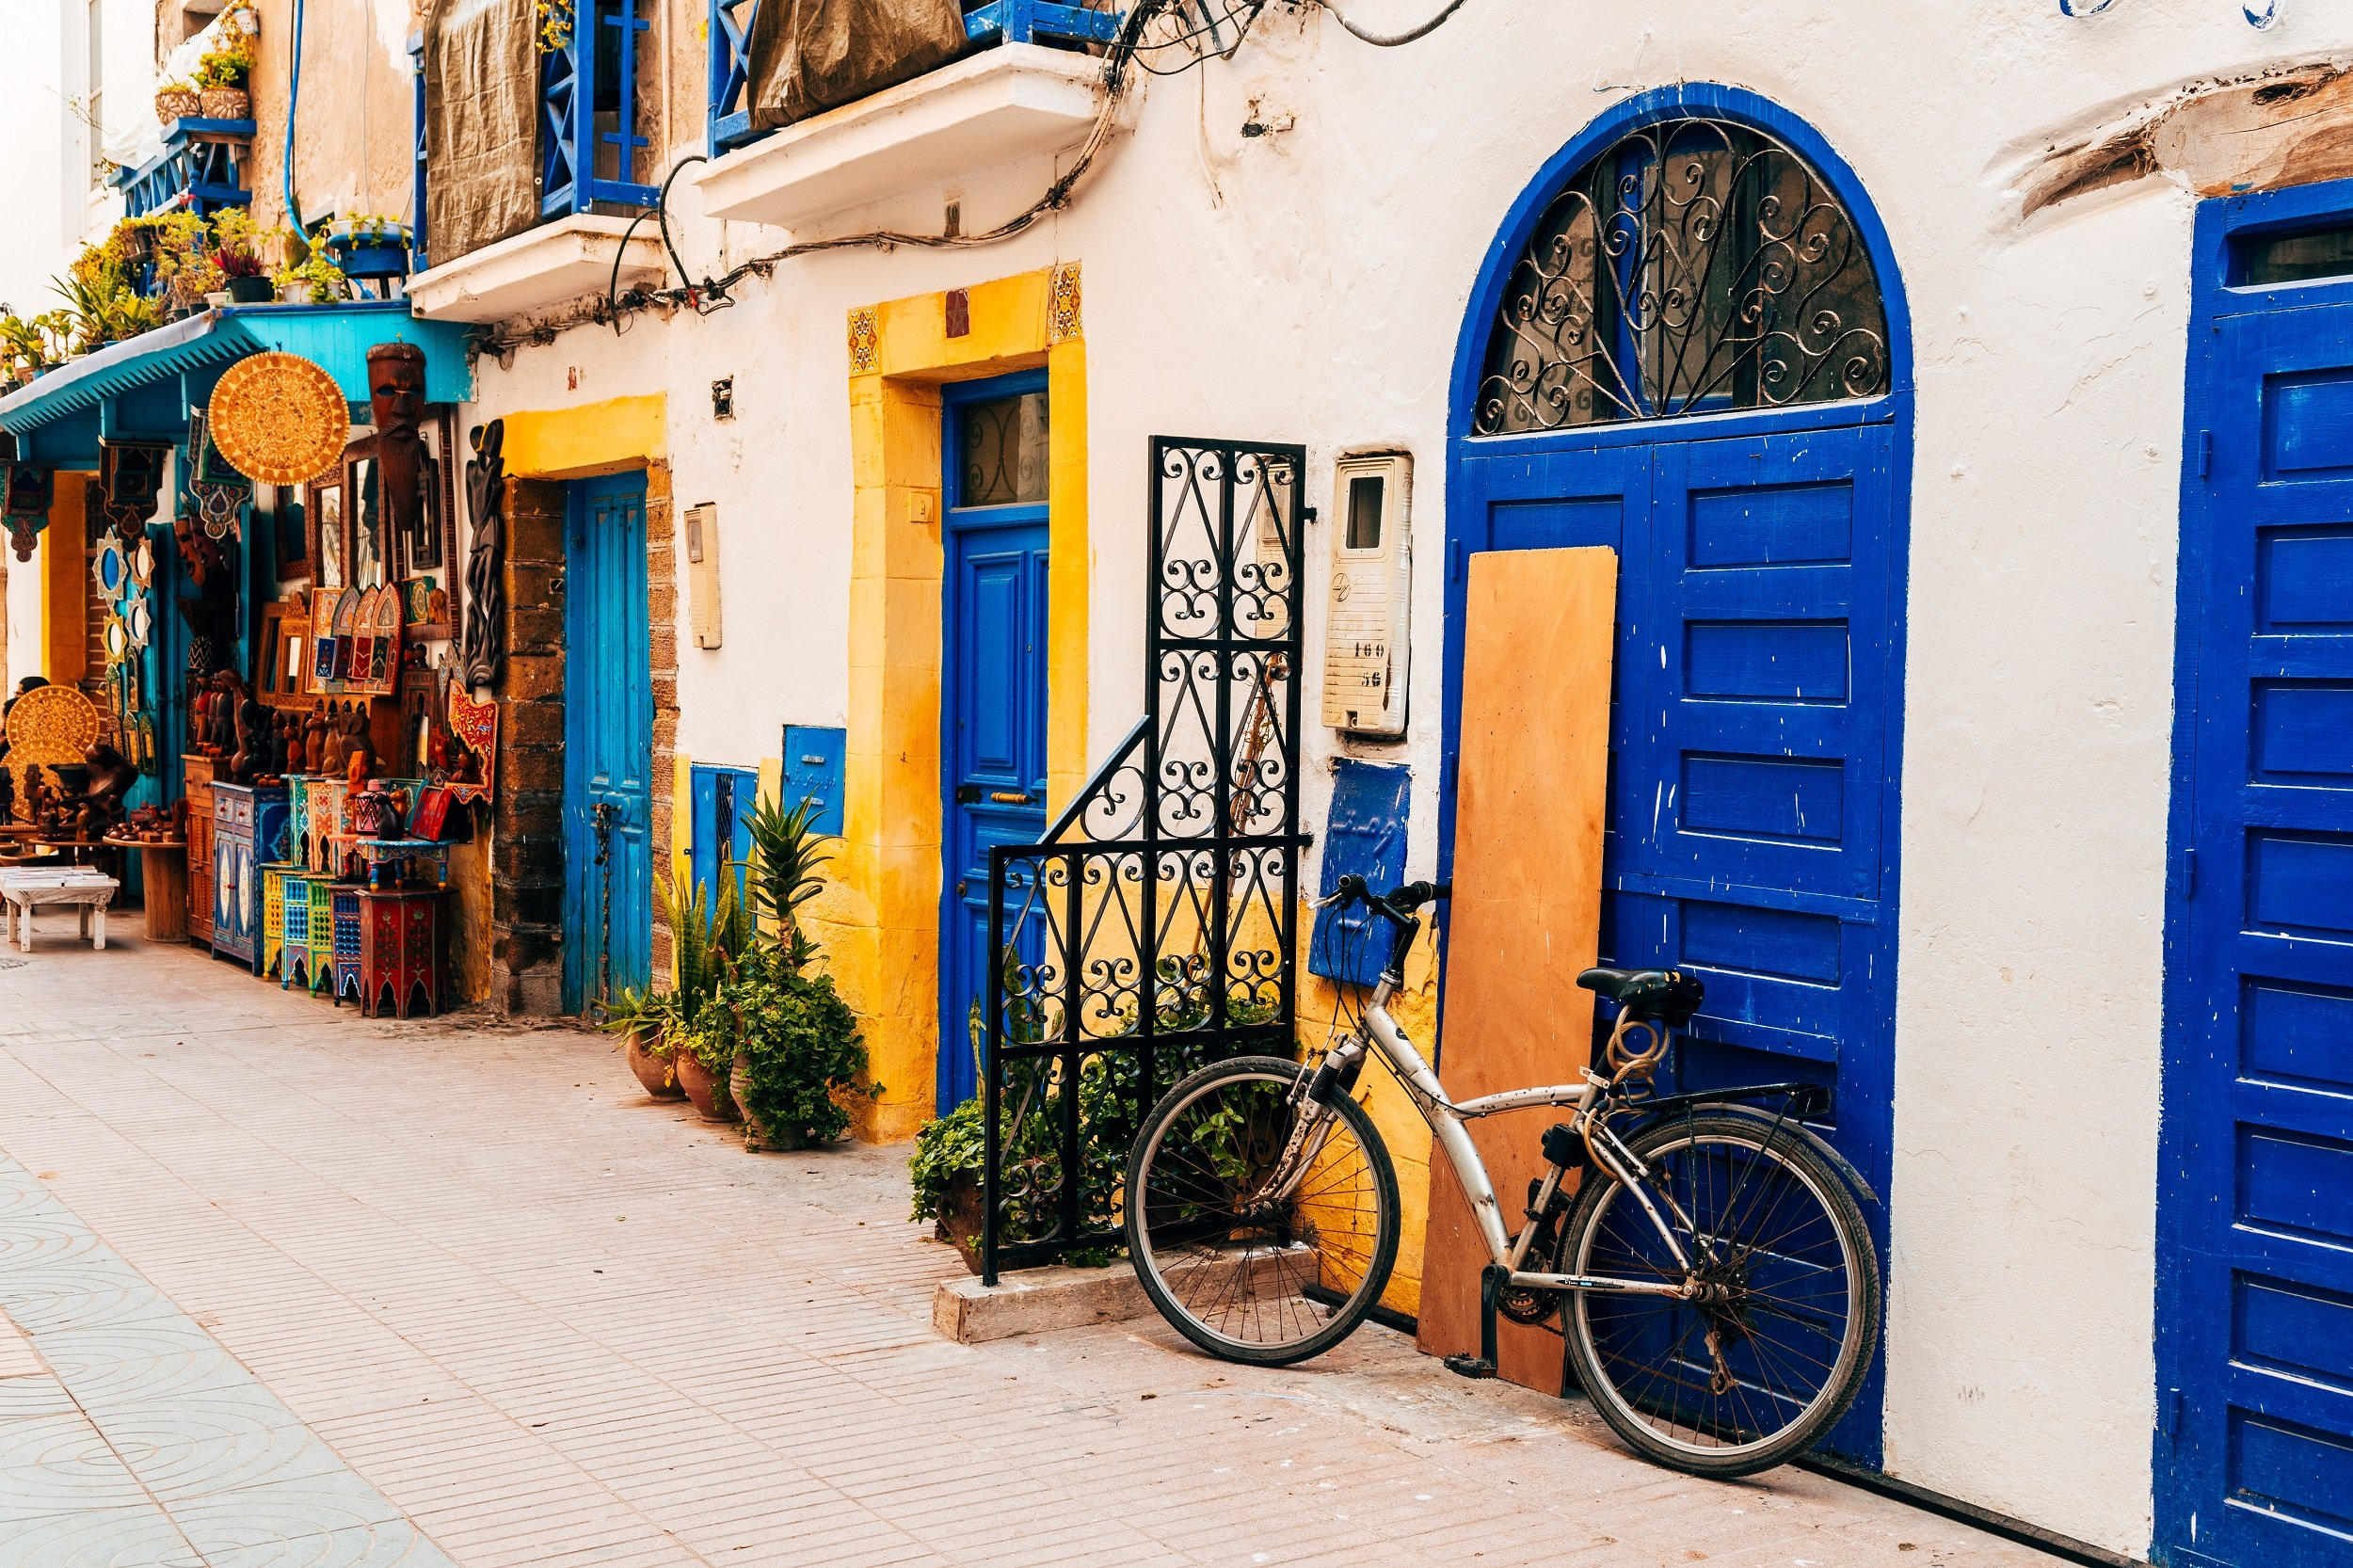 Explore The Colorful Streets Of Essaouria On The Essaouira Tour From Marrakesh